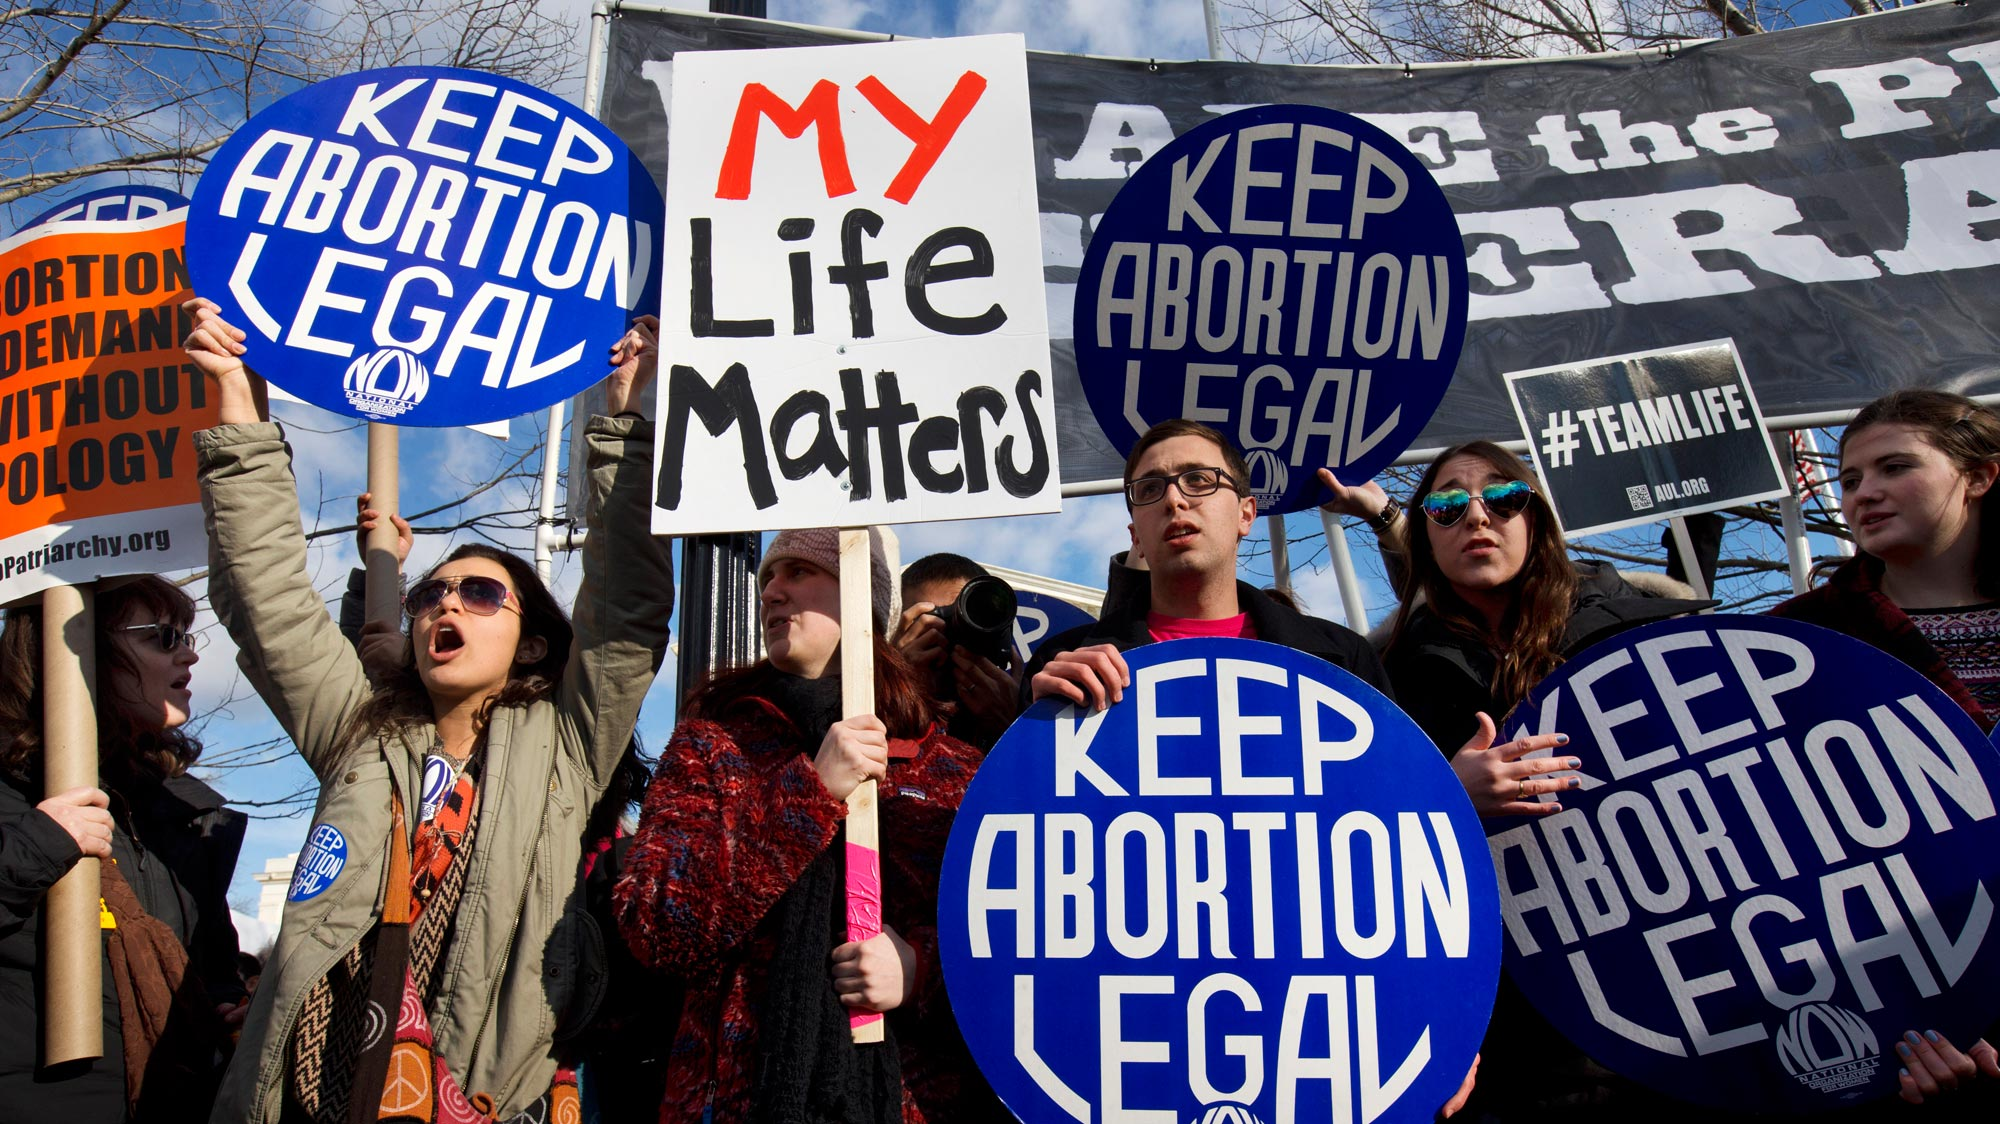 Trump Admin Must Let Illegal Immigrant Get Abortion, Judge Says